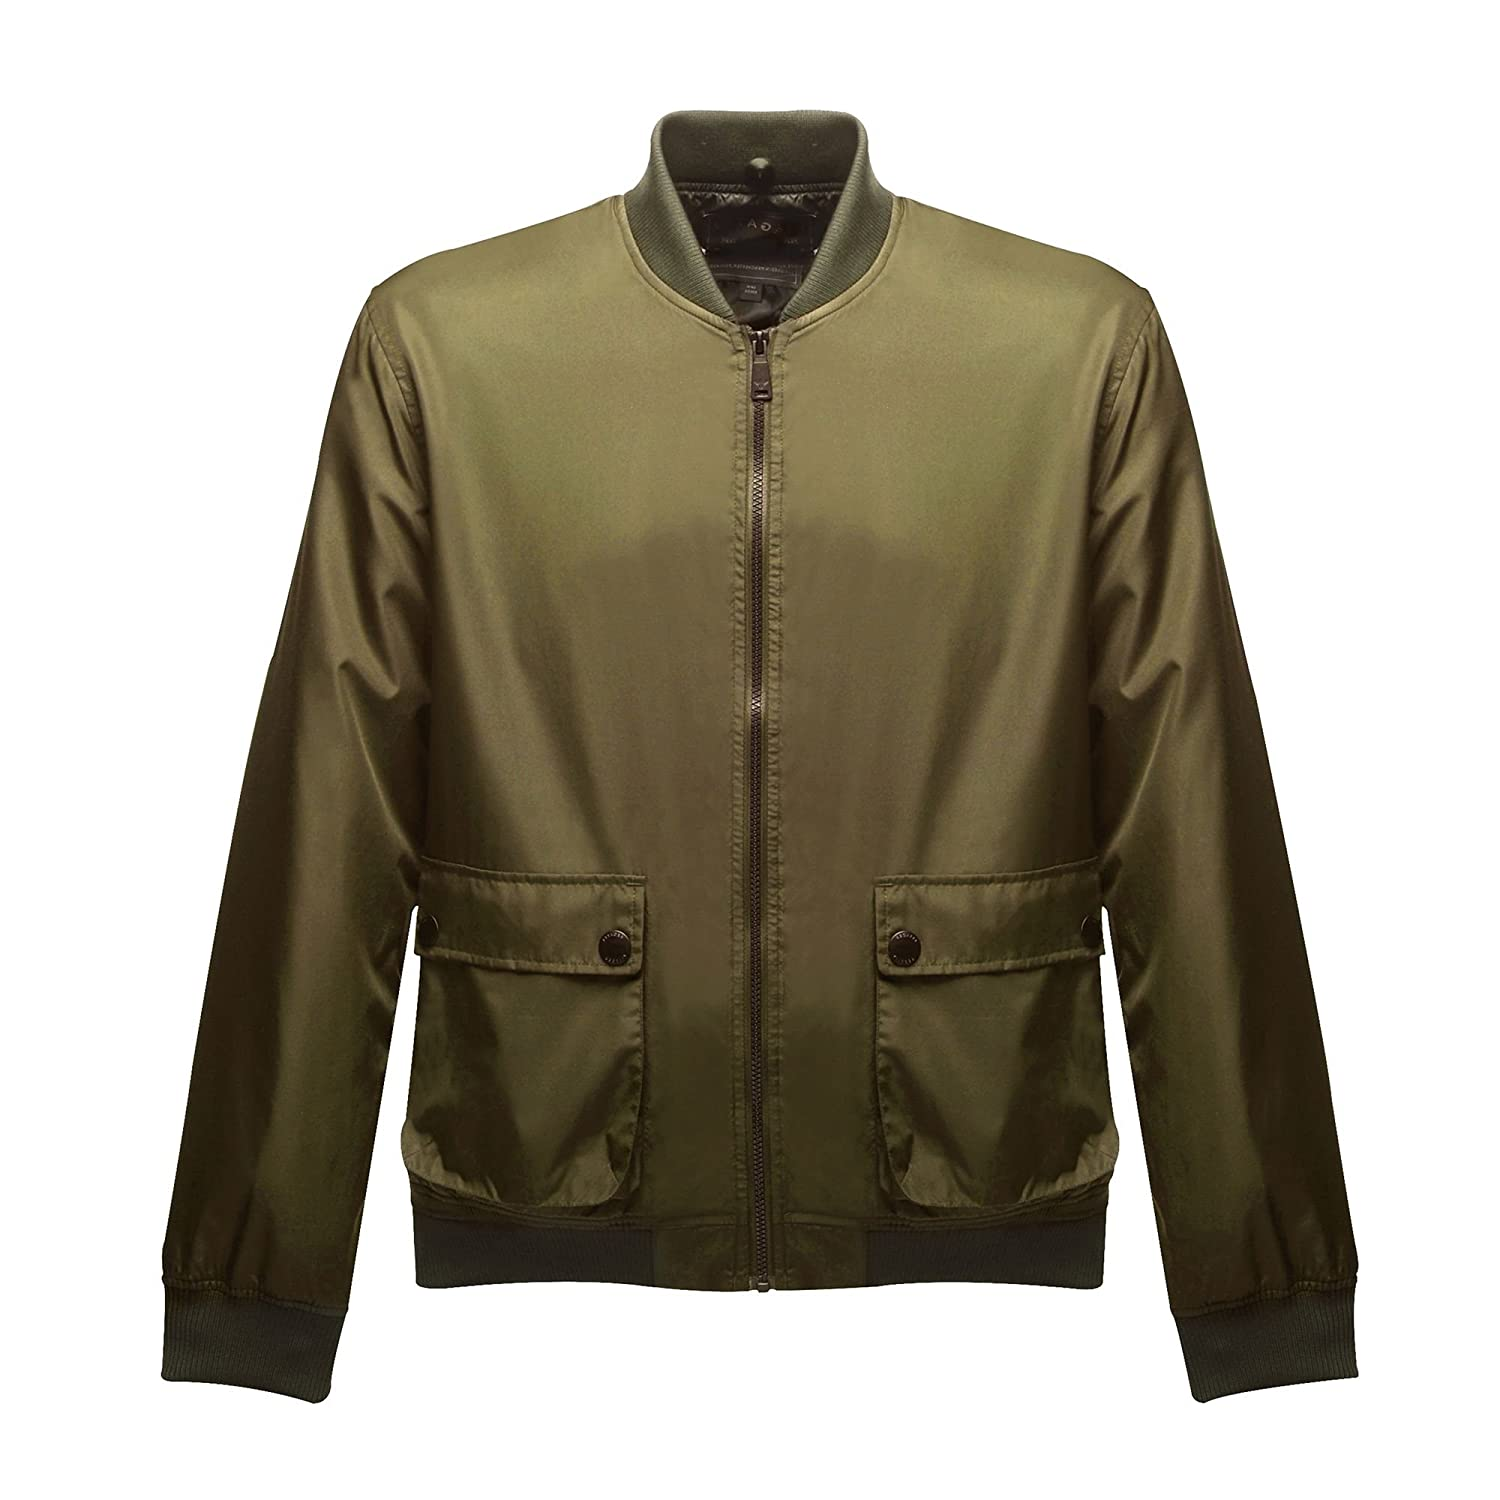 Regatta Mens Originals Castlefield Bomber Jacket